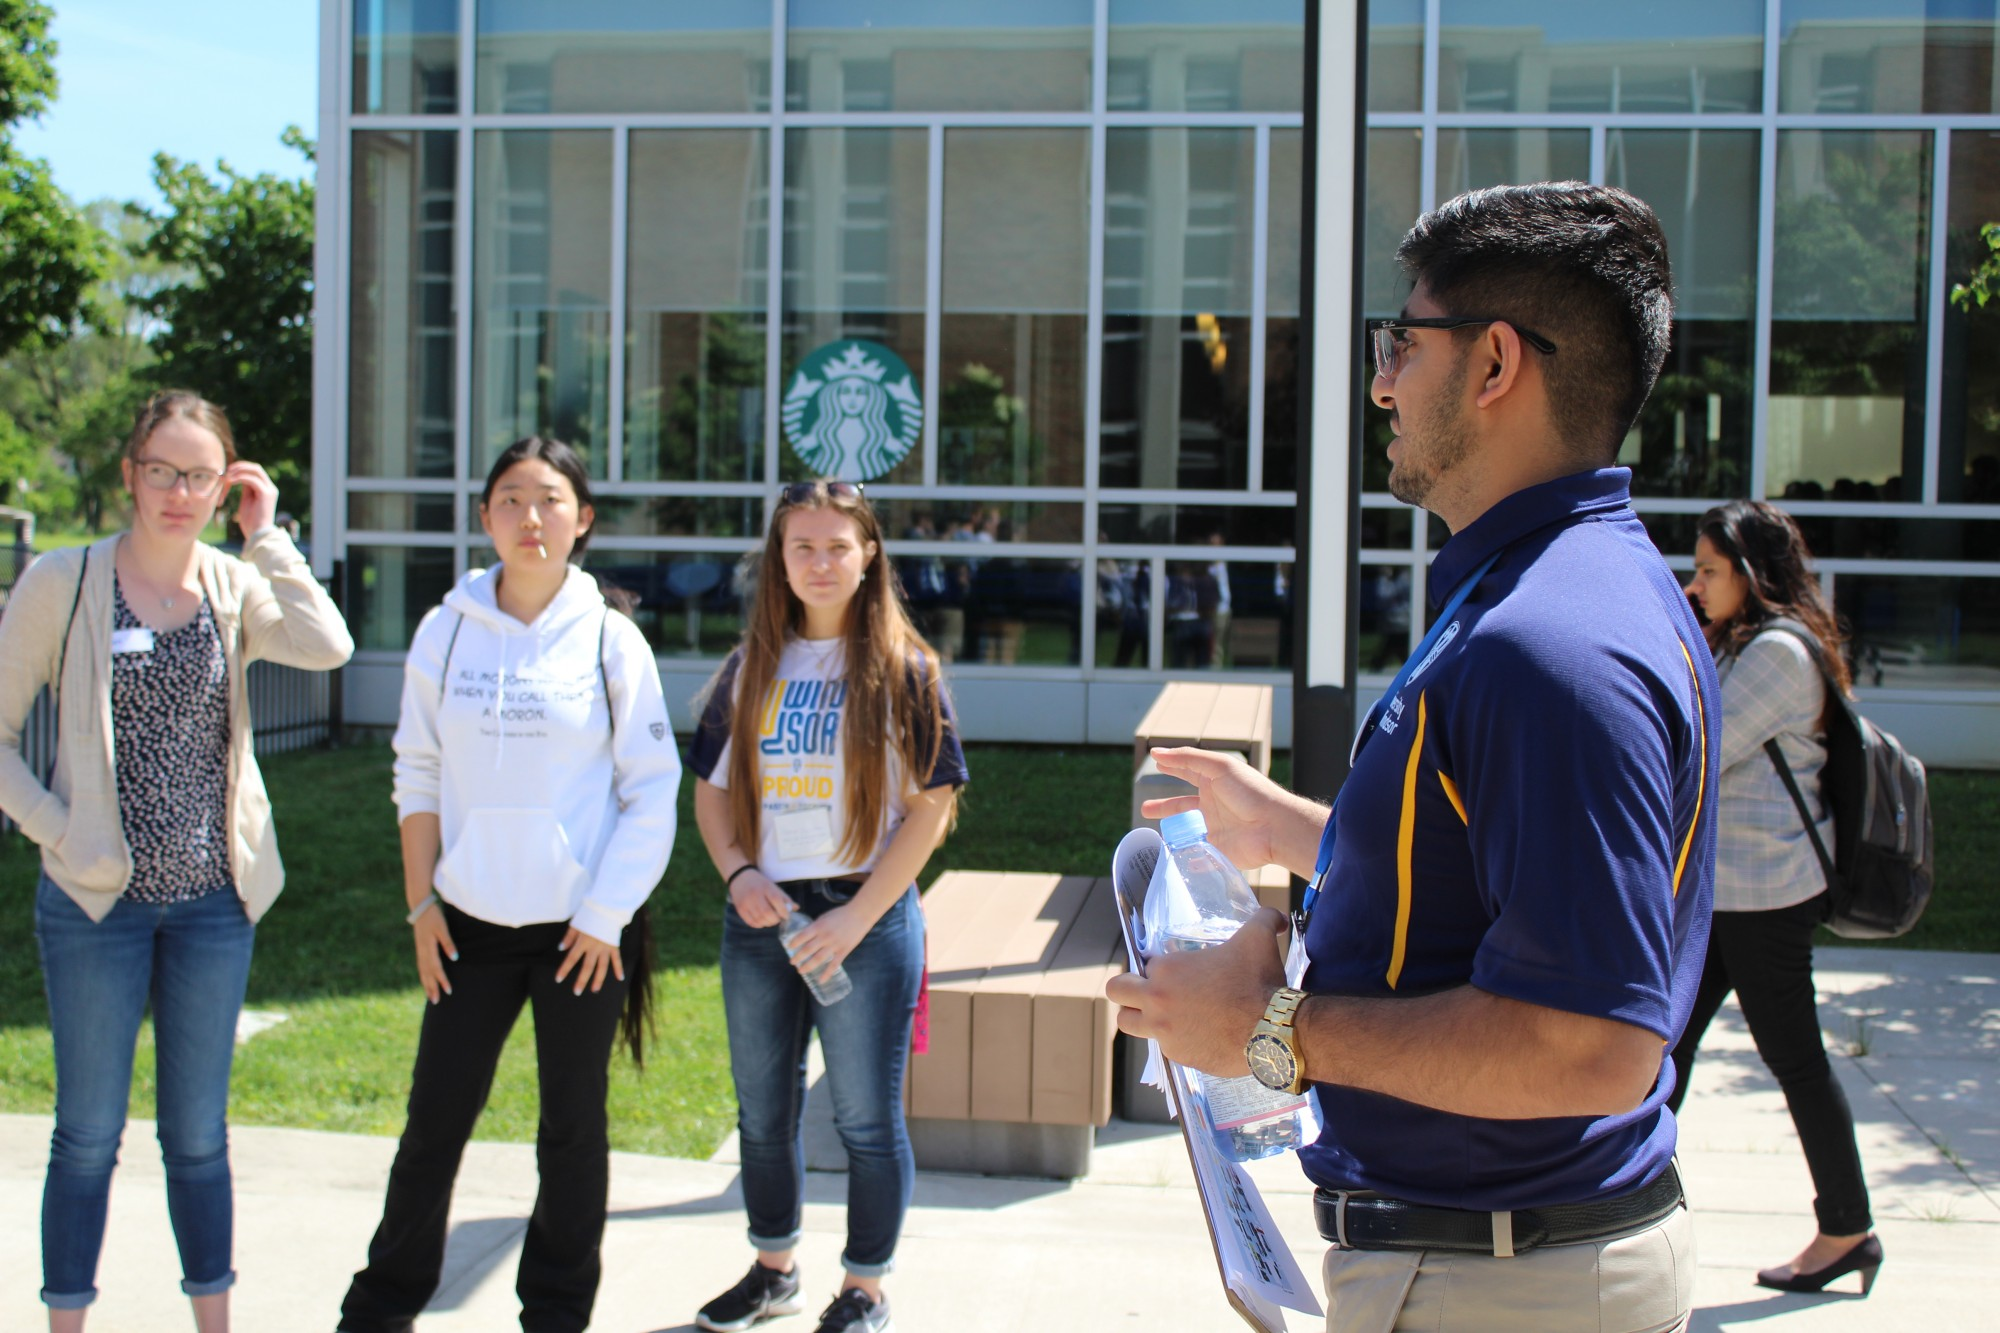 A staff member providing students with a tour of campus